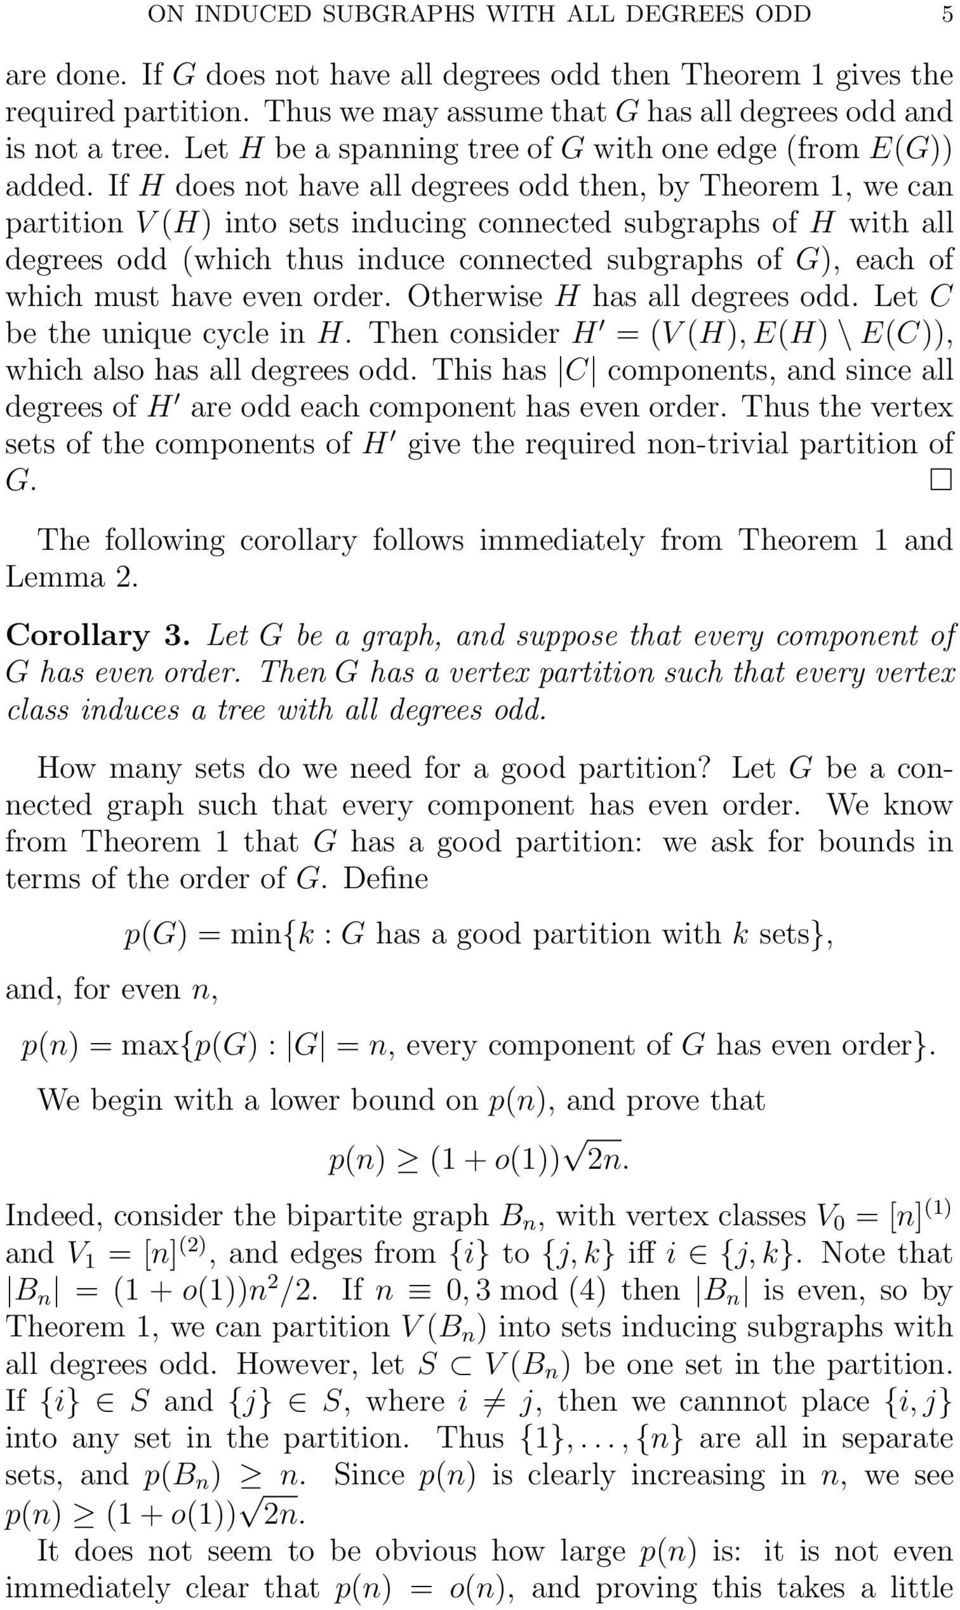 If H does not have all degrees odd then, by Theorem 1, we can partition V (H) into sets inducing connected subgraphs of H with all degrees odd (which thus induce connected subgraphs of G), each of